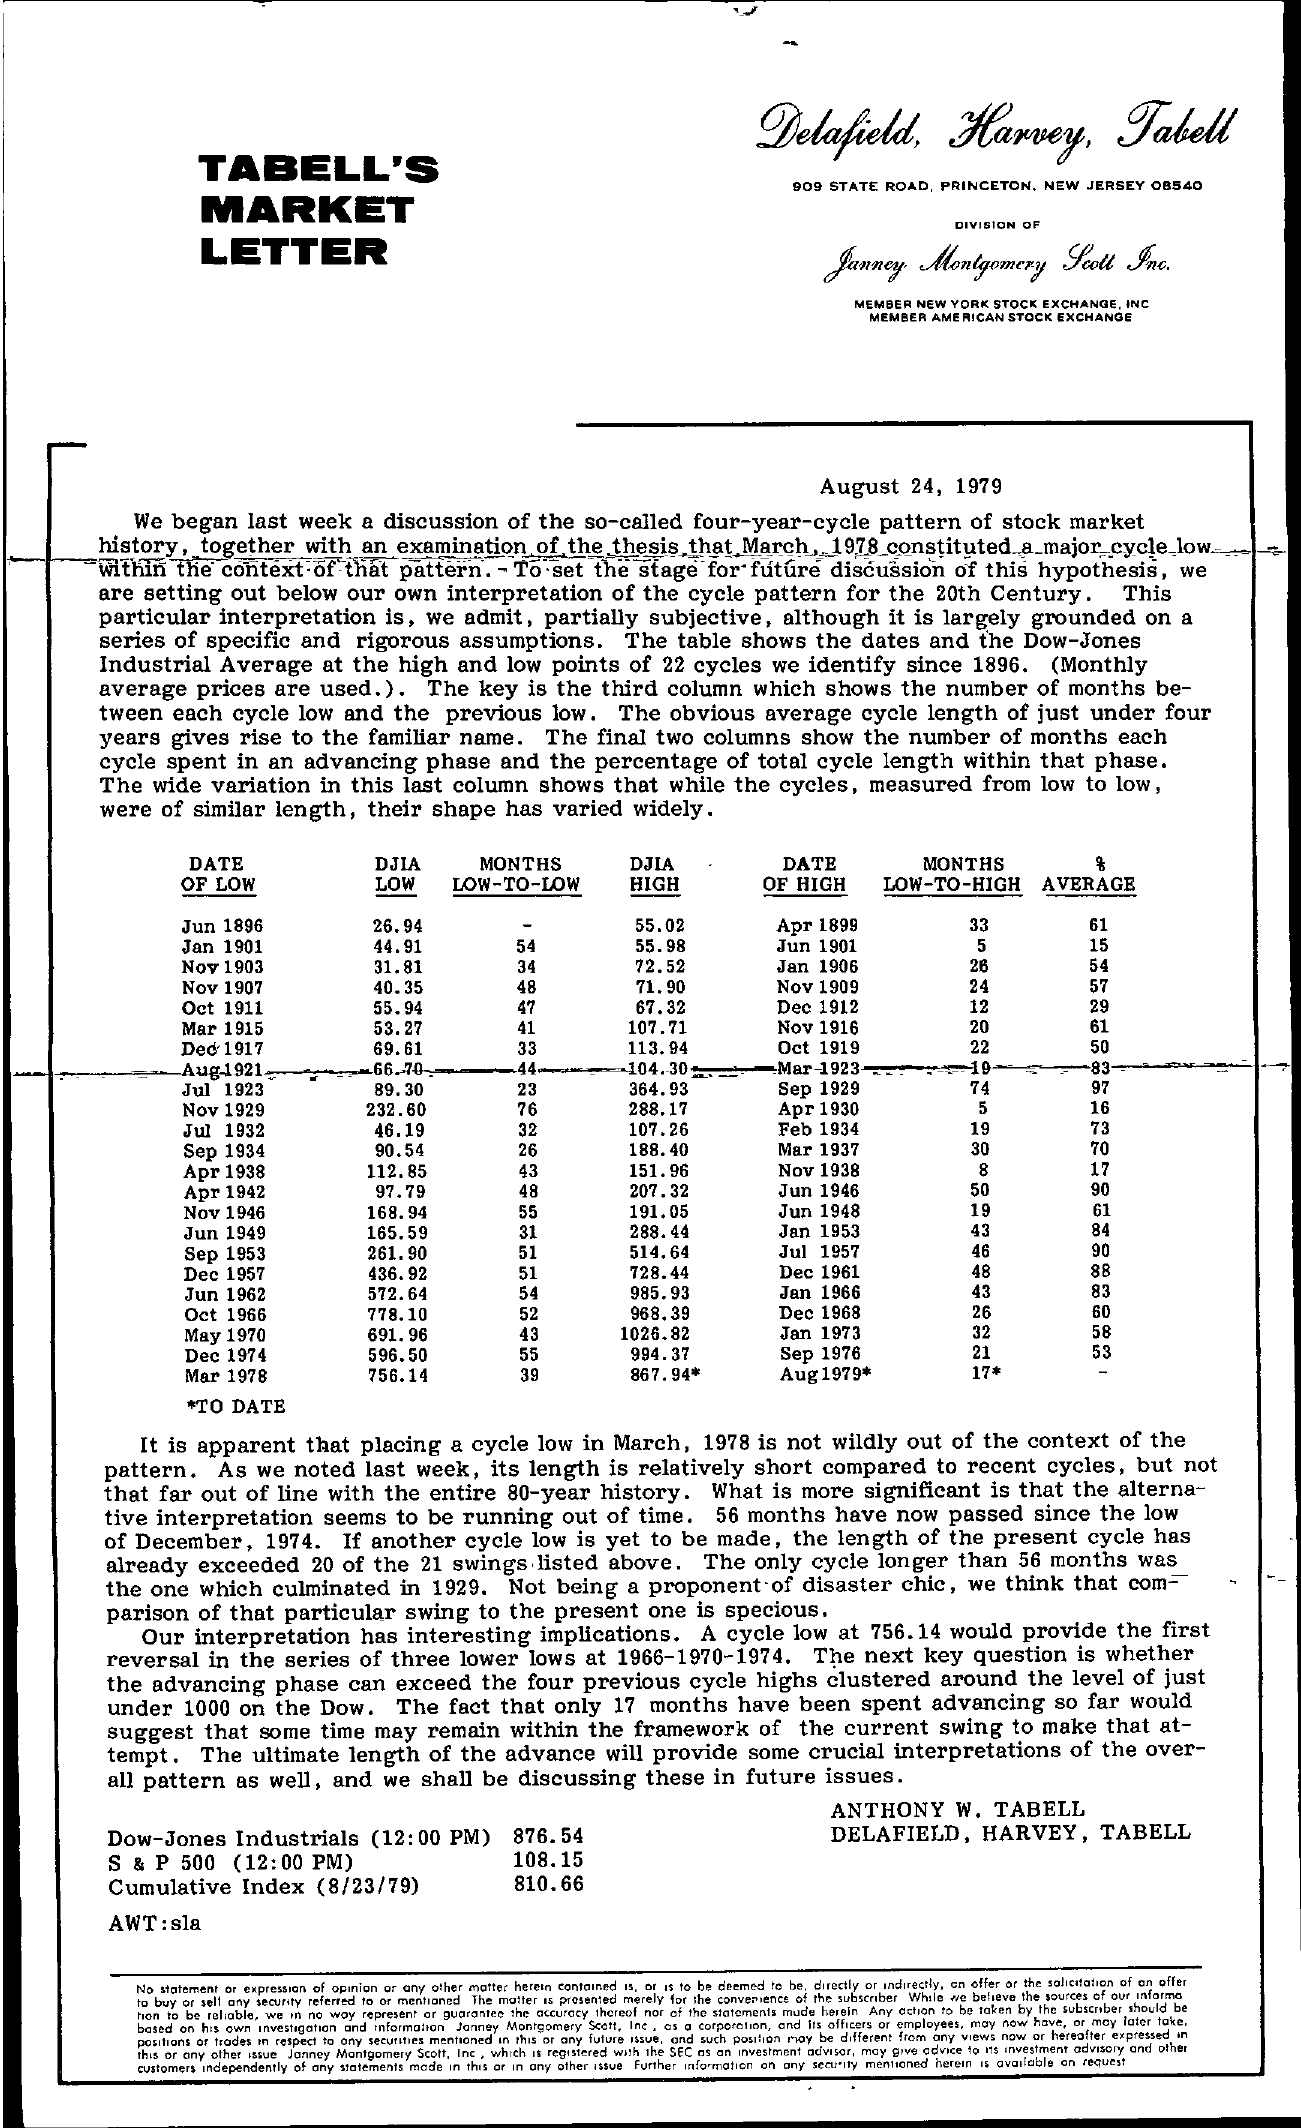 Tabell's Market Letter - August 24, 1979